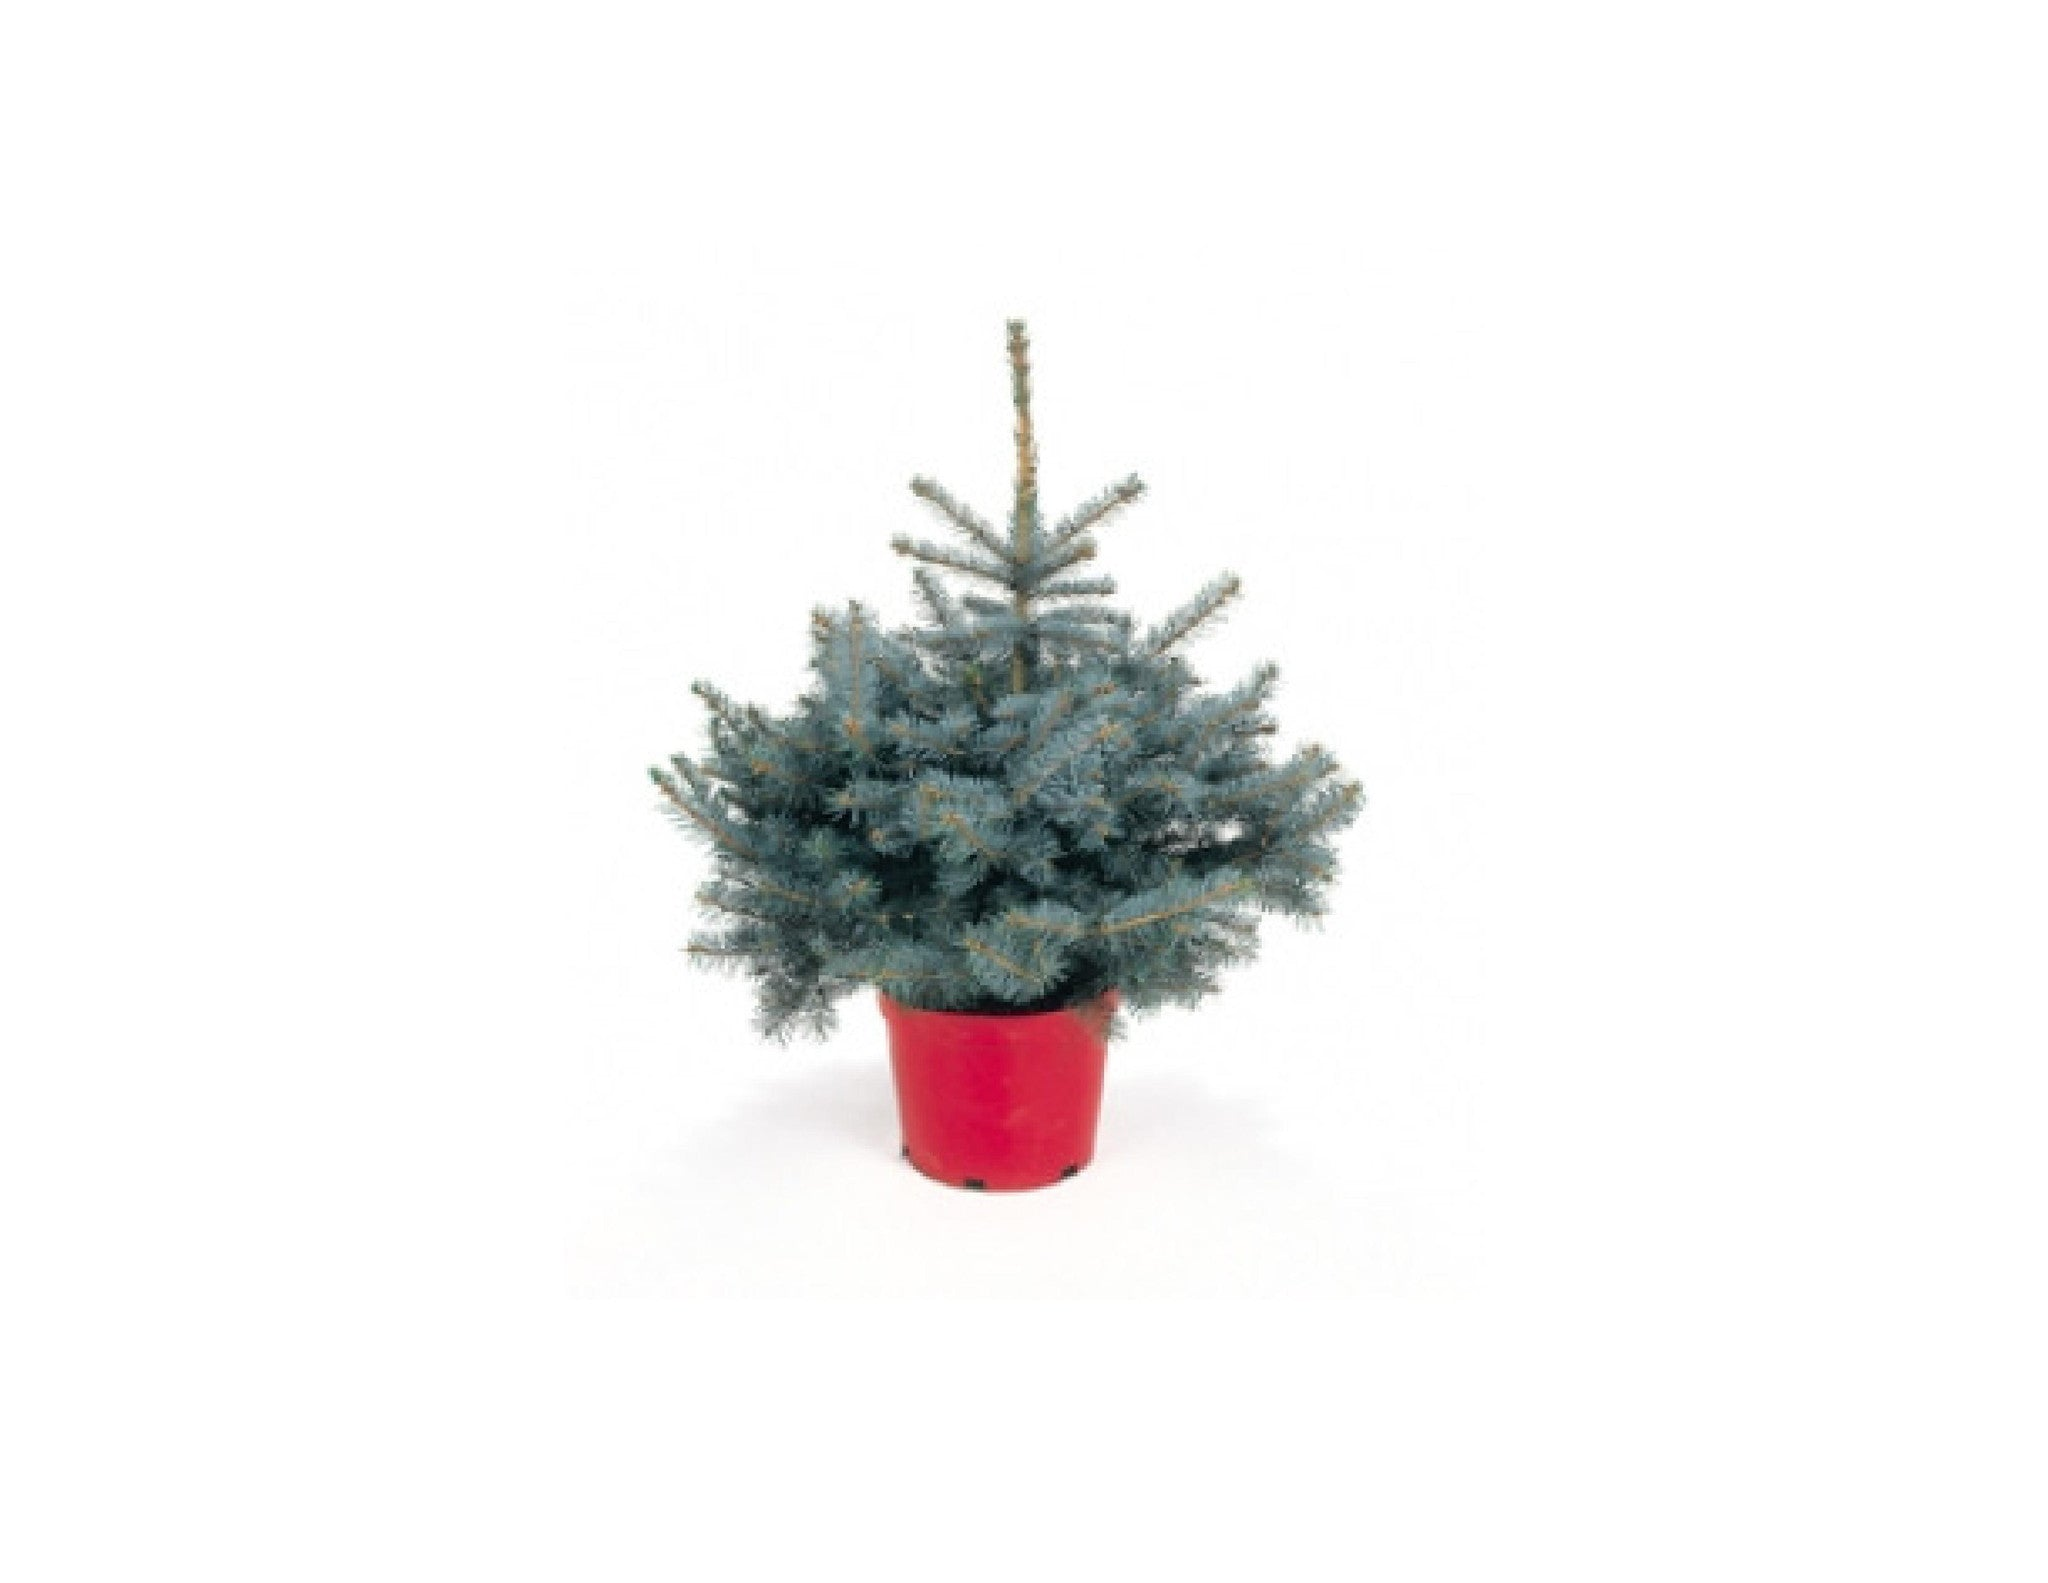 #2.5 foot Pot Grown Blue Spruce